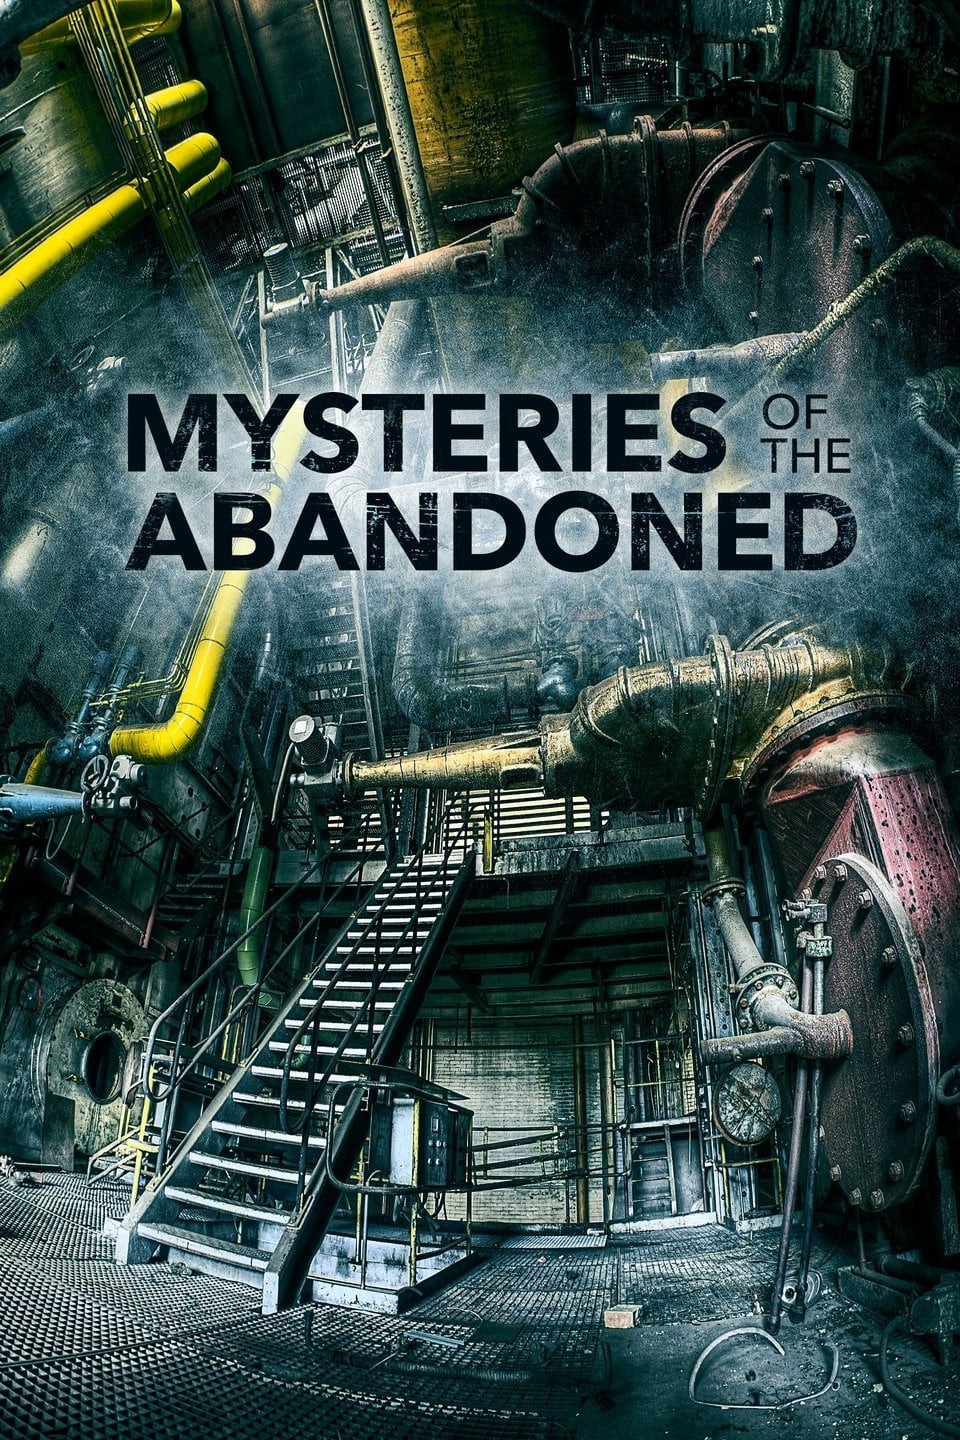 Watch Mysteries Of The Abandoned 2021 Episode 7 Premiere Full Episode On Science By Terry F Hall Mysteries Of The Abandoned 2021 Episode 7 Ghosts Of Black Mountain Jan 2021 Medium